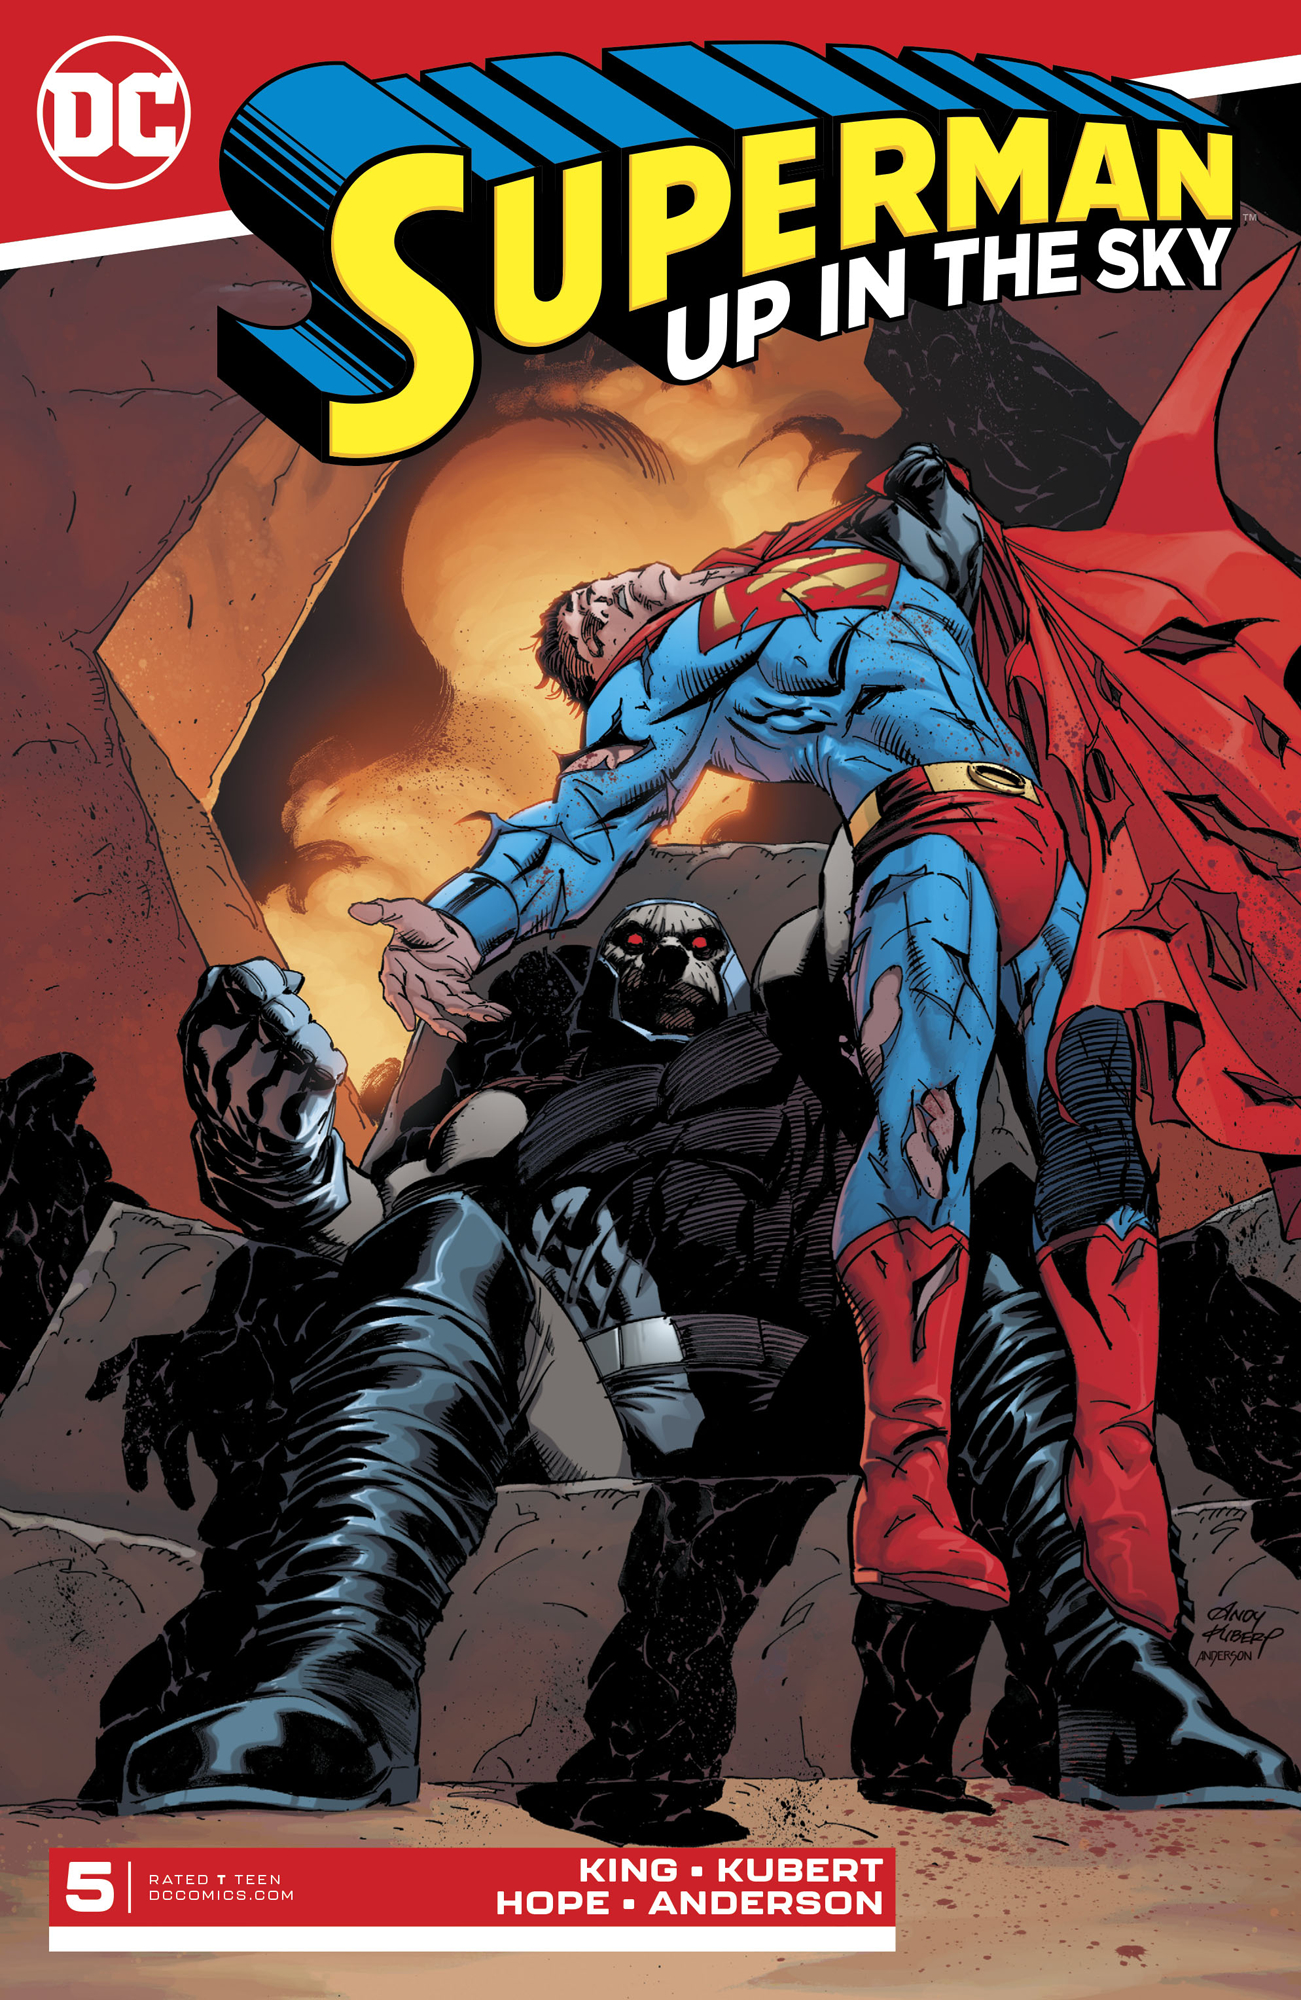 SUPERMAN UP IN THE SKY #5 (OF 6)